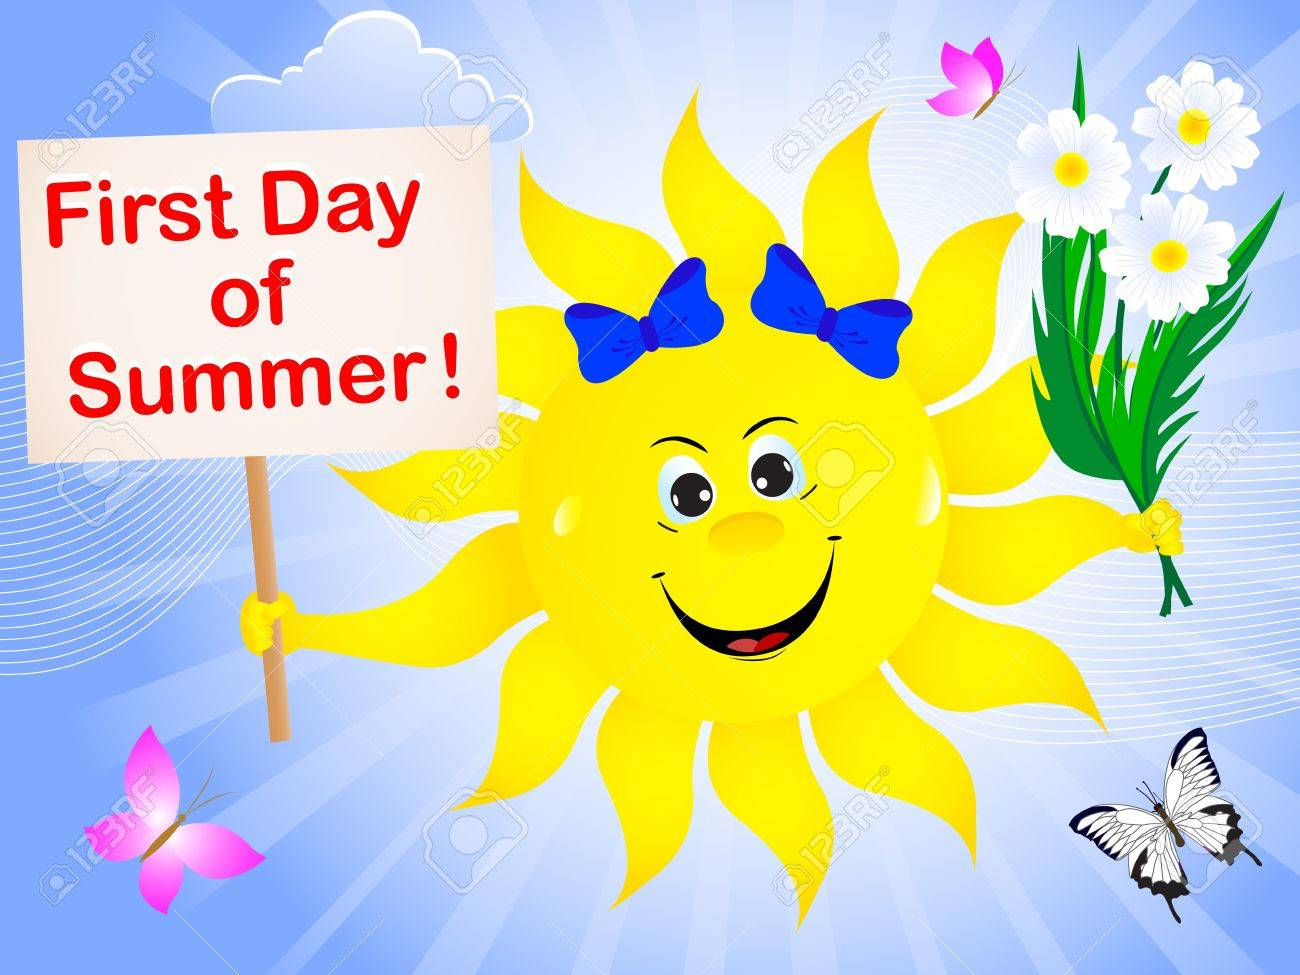 First day of summer free clipart image download First Day Of Summer Clipart 8 - 1300 X 975 - Making-The-Web.com image download